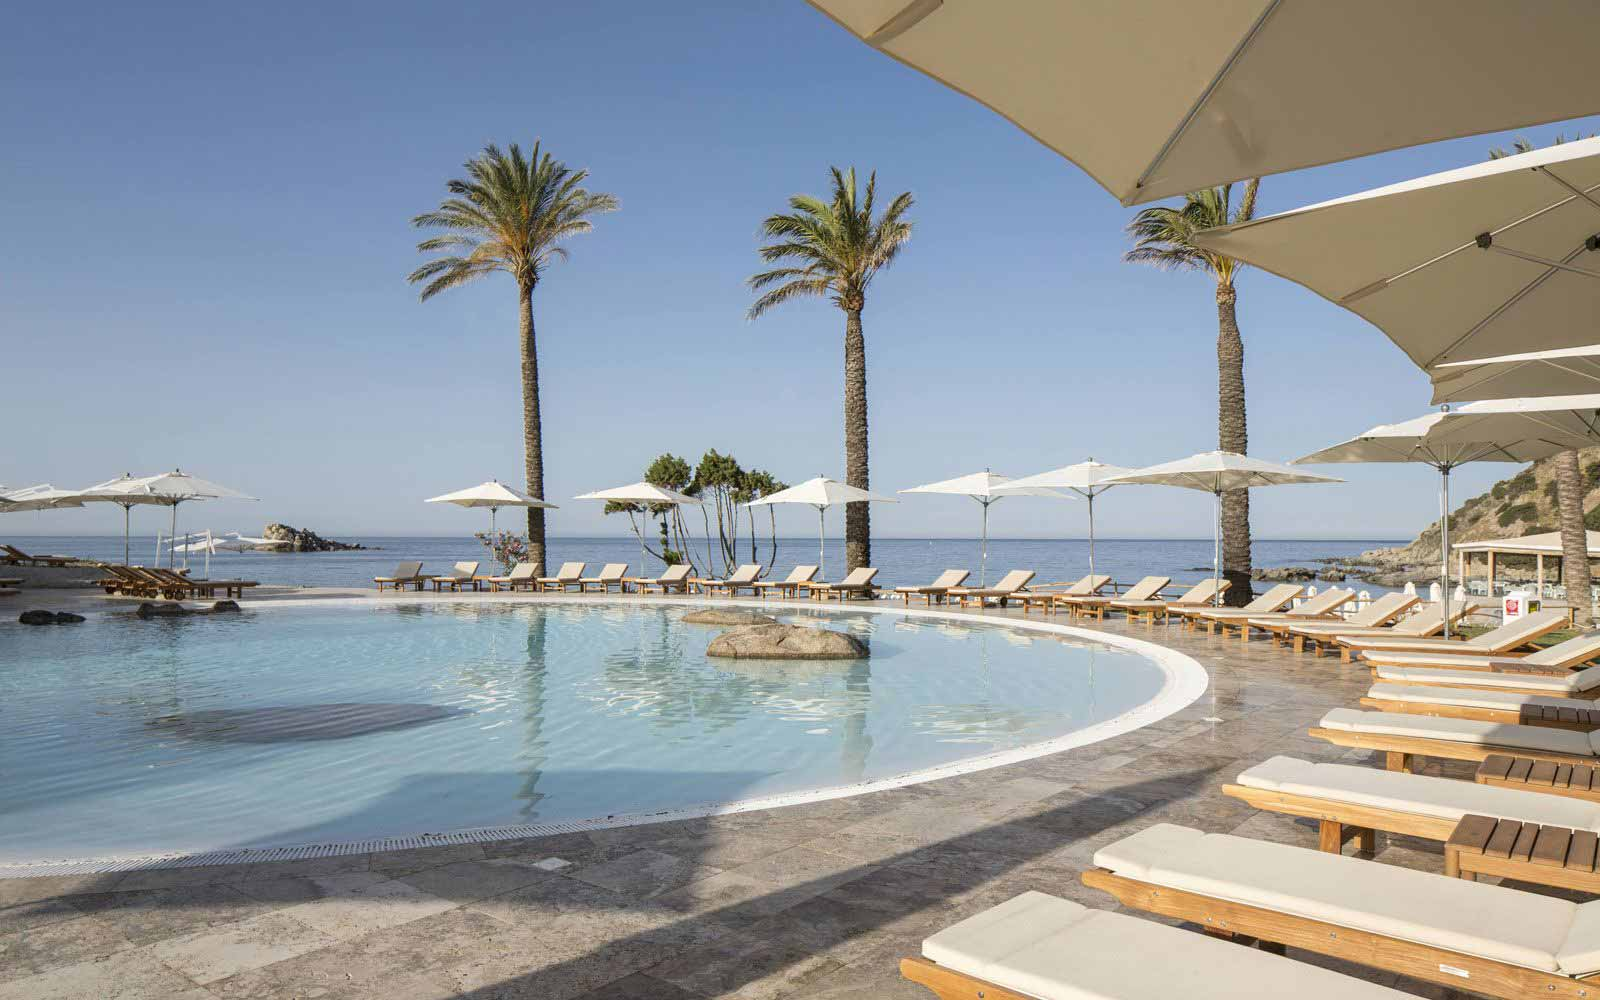 Swimming pool and solarium at Falkensteiner Resort Capo Boi